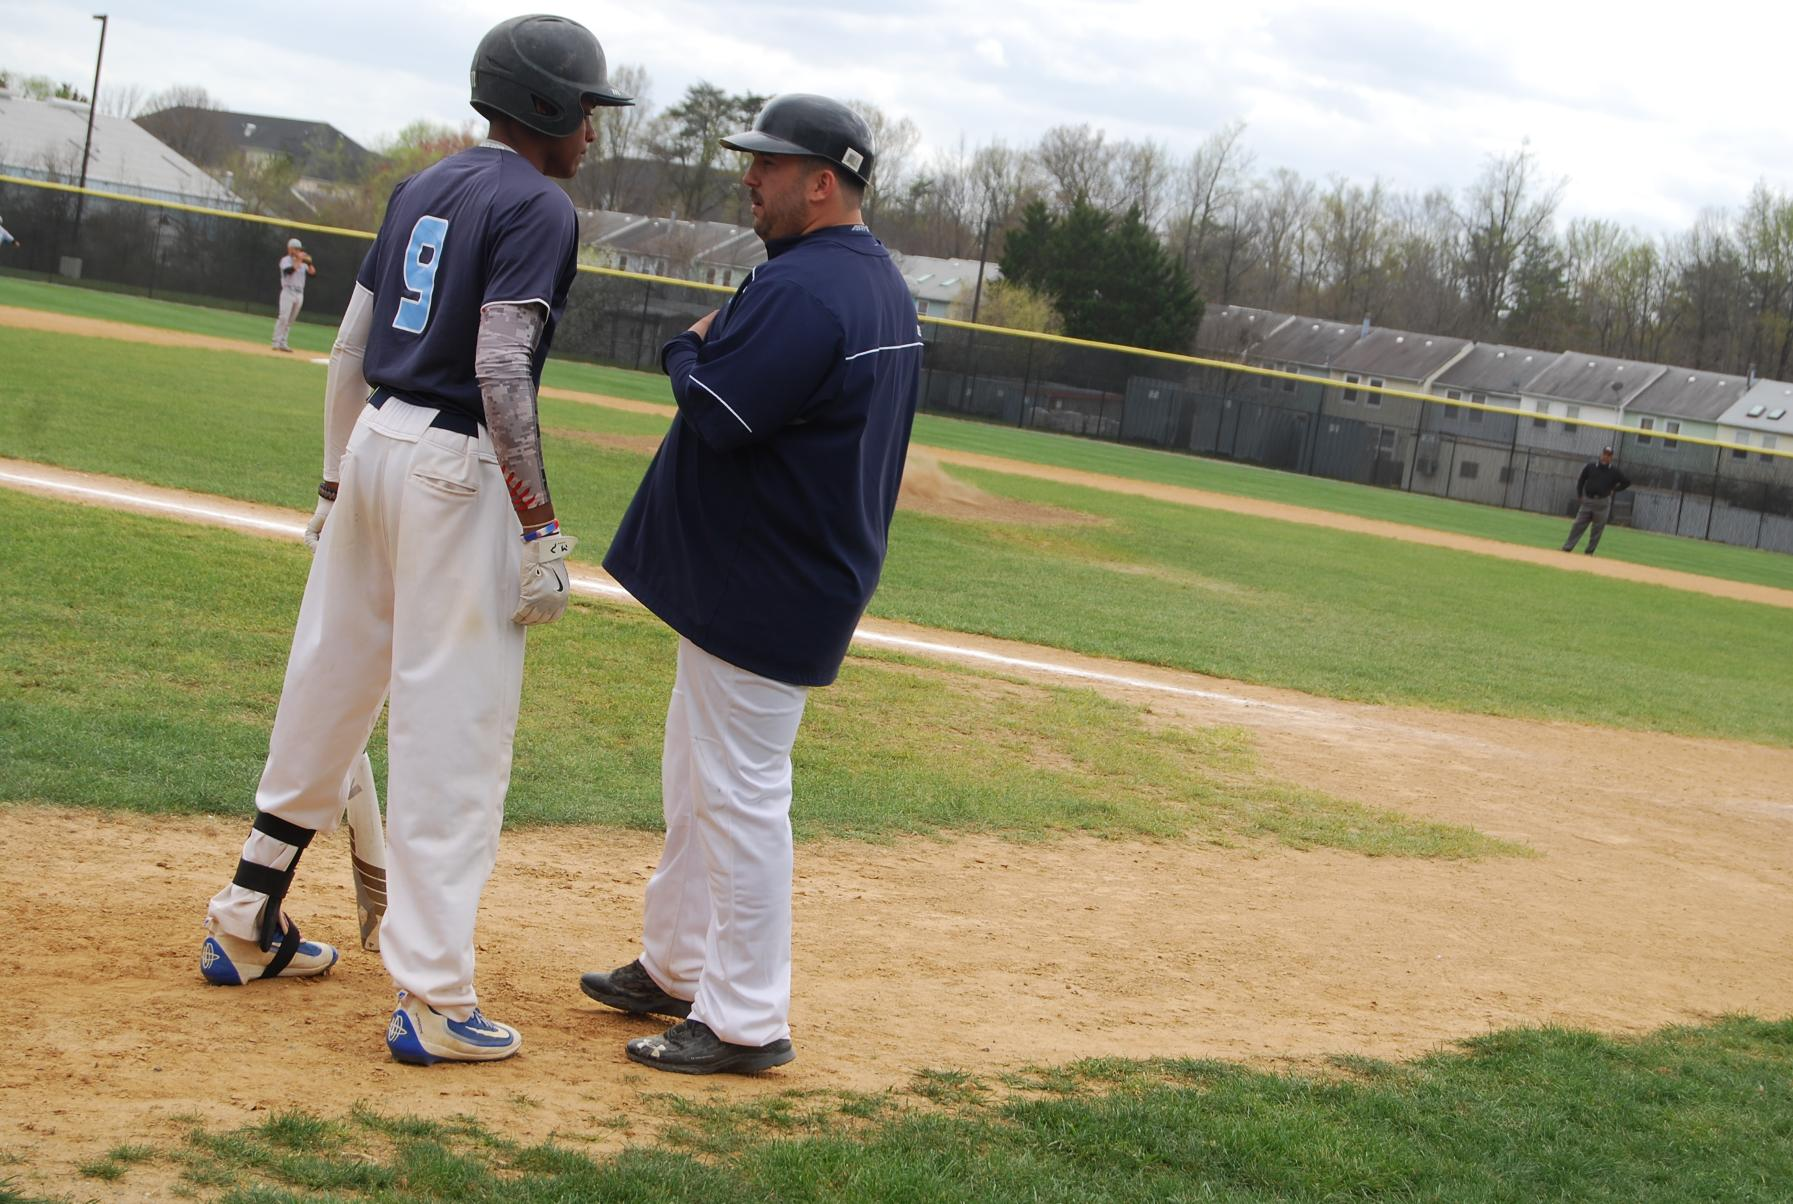 Prince George's Baseball Announces Changes For Three-Game Series Against Orange County Due to Weather